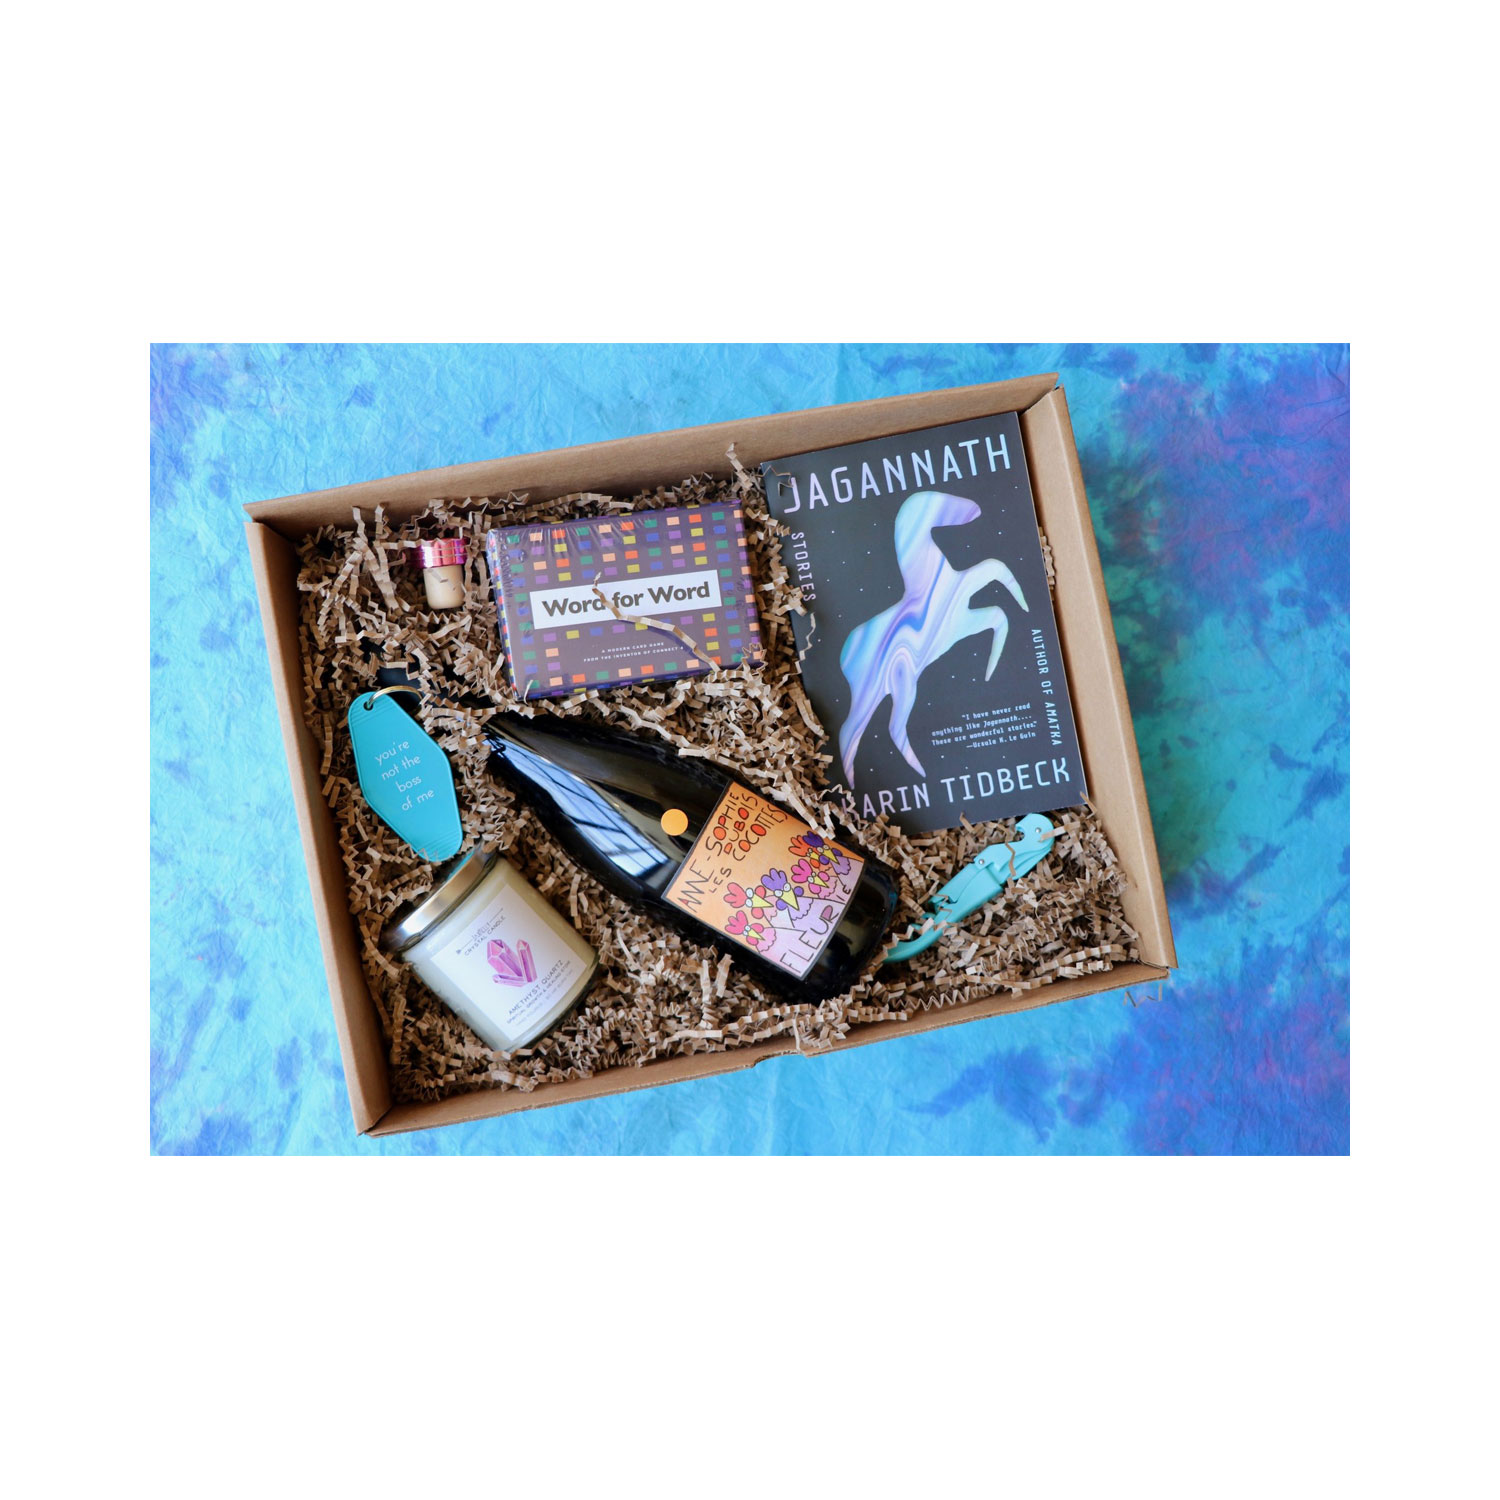 BEAST BOX GIFT BOXES BY VINOVORE WINES